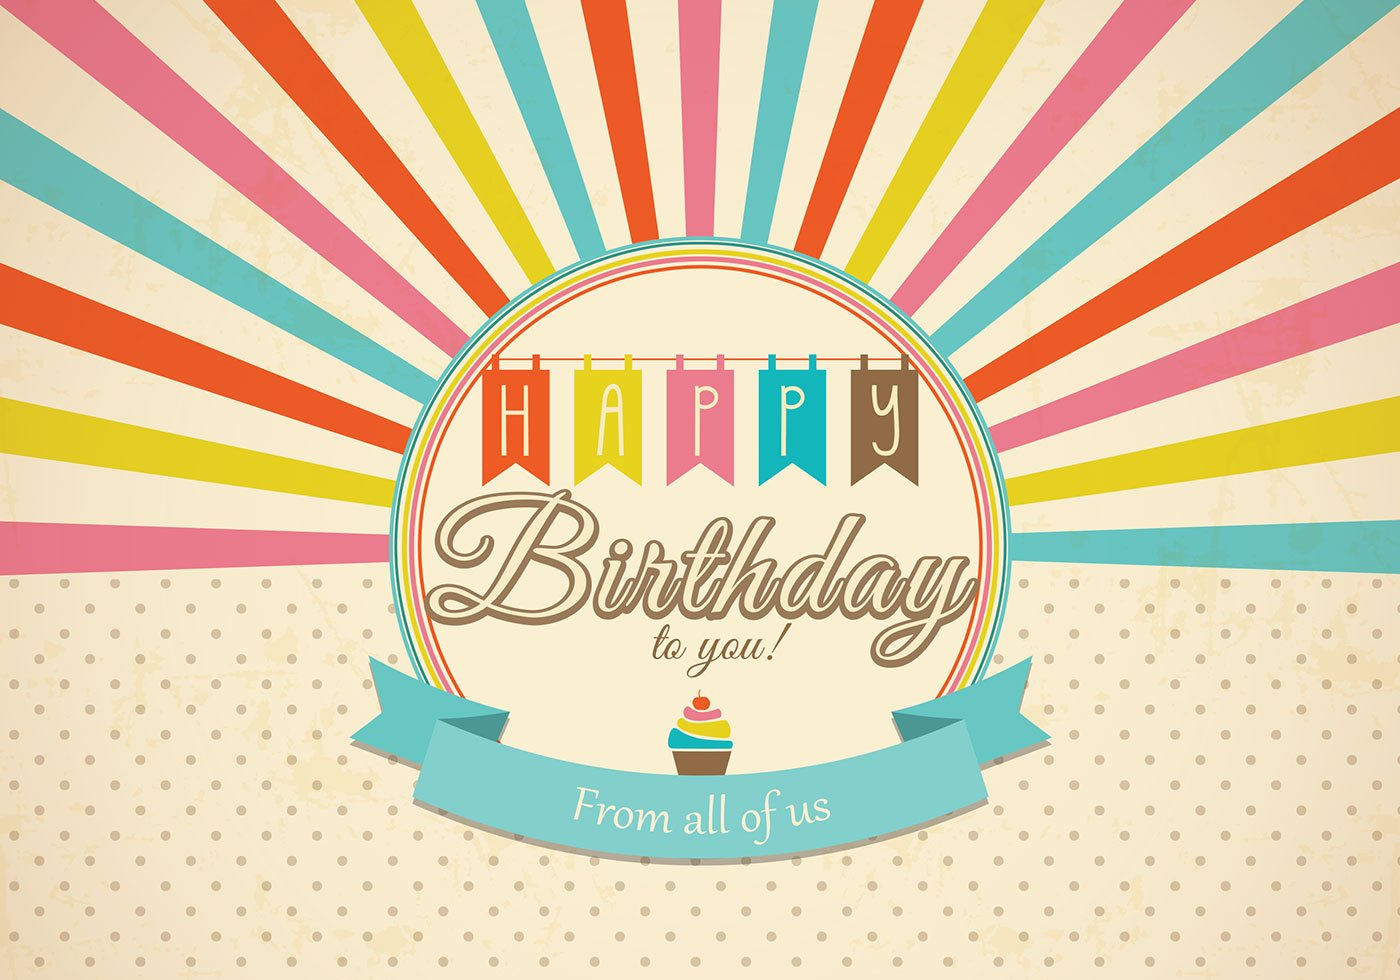 ... Retro Happy Birthday Card PSD ...  Happy Birthday Card Template Free Download